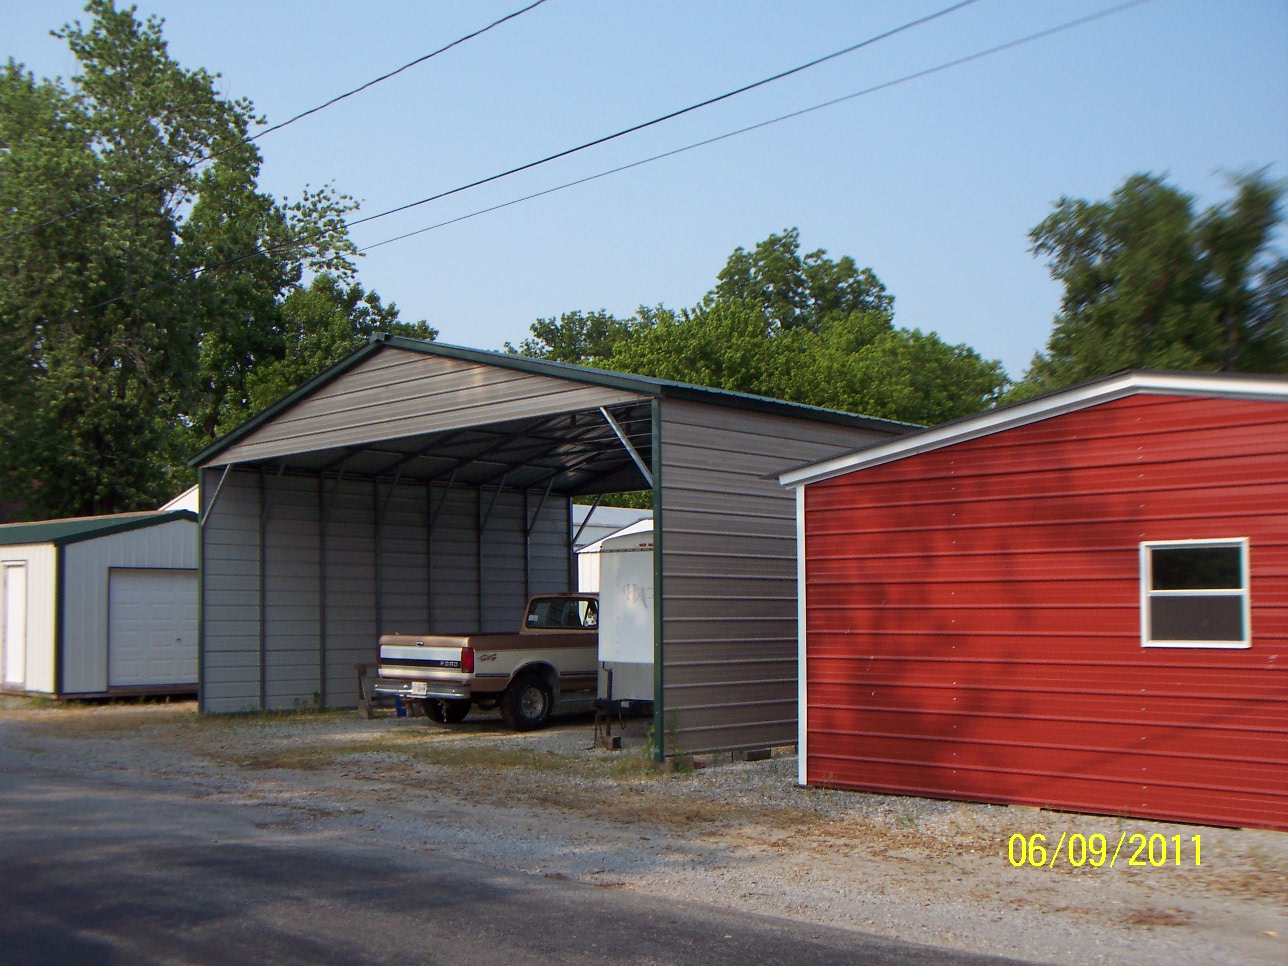 Carolina carports carports garages and storage for Carport garages